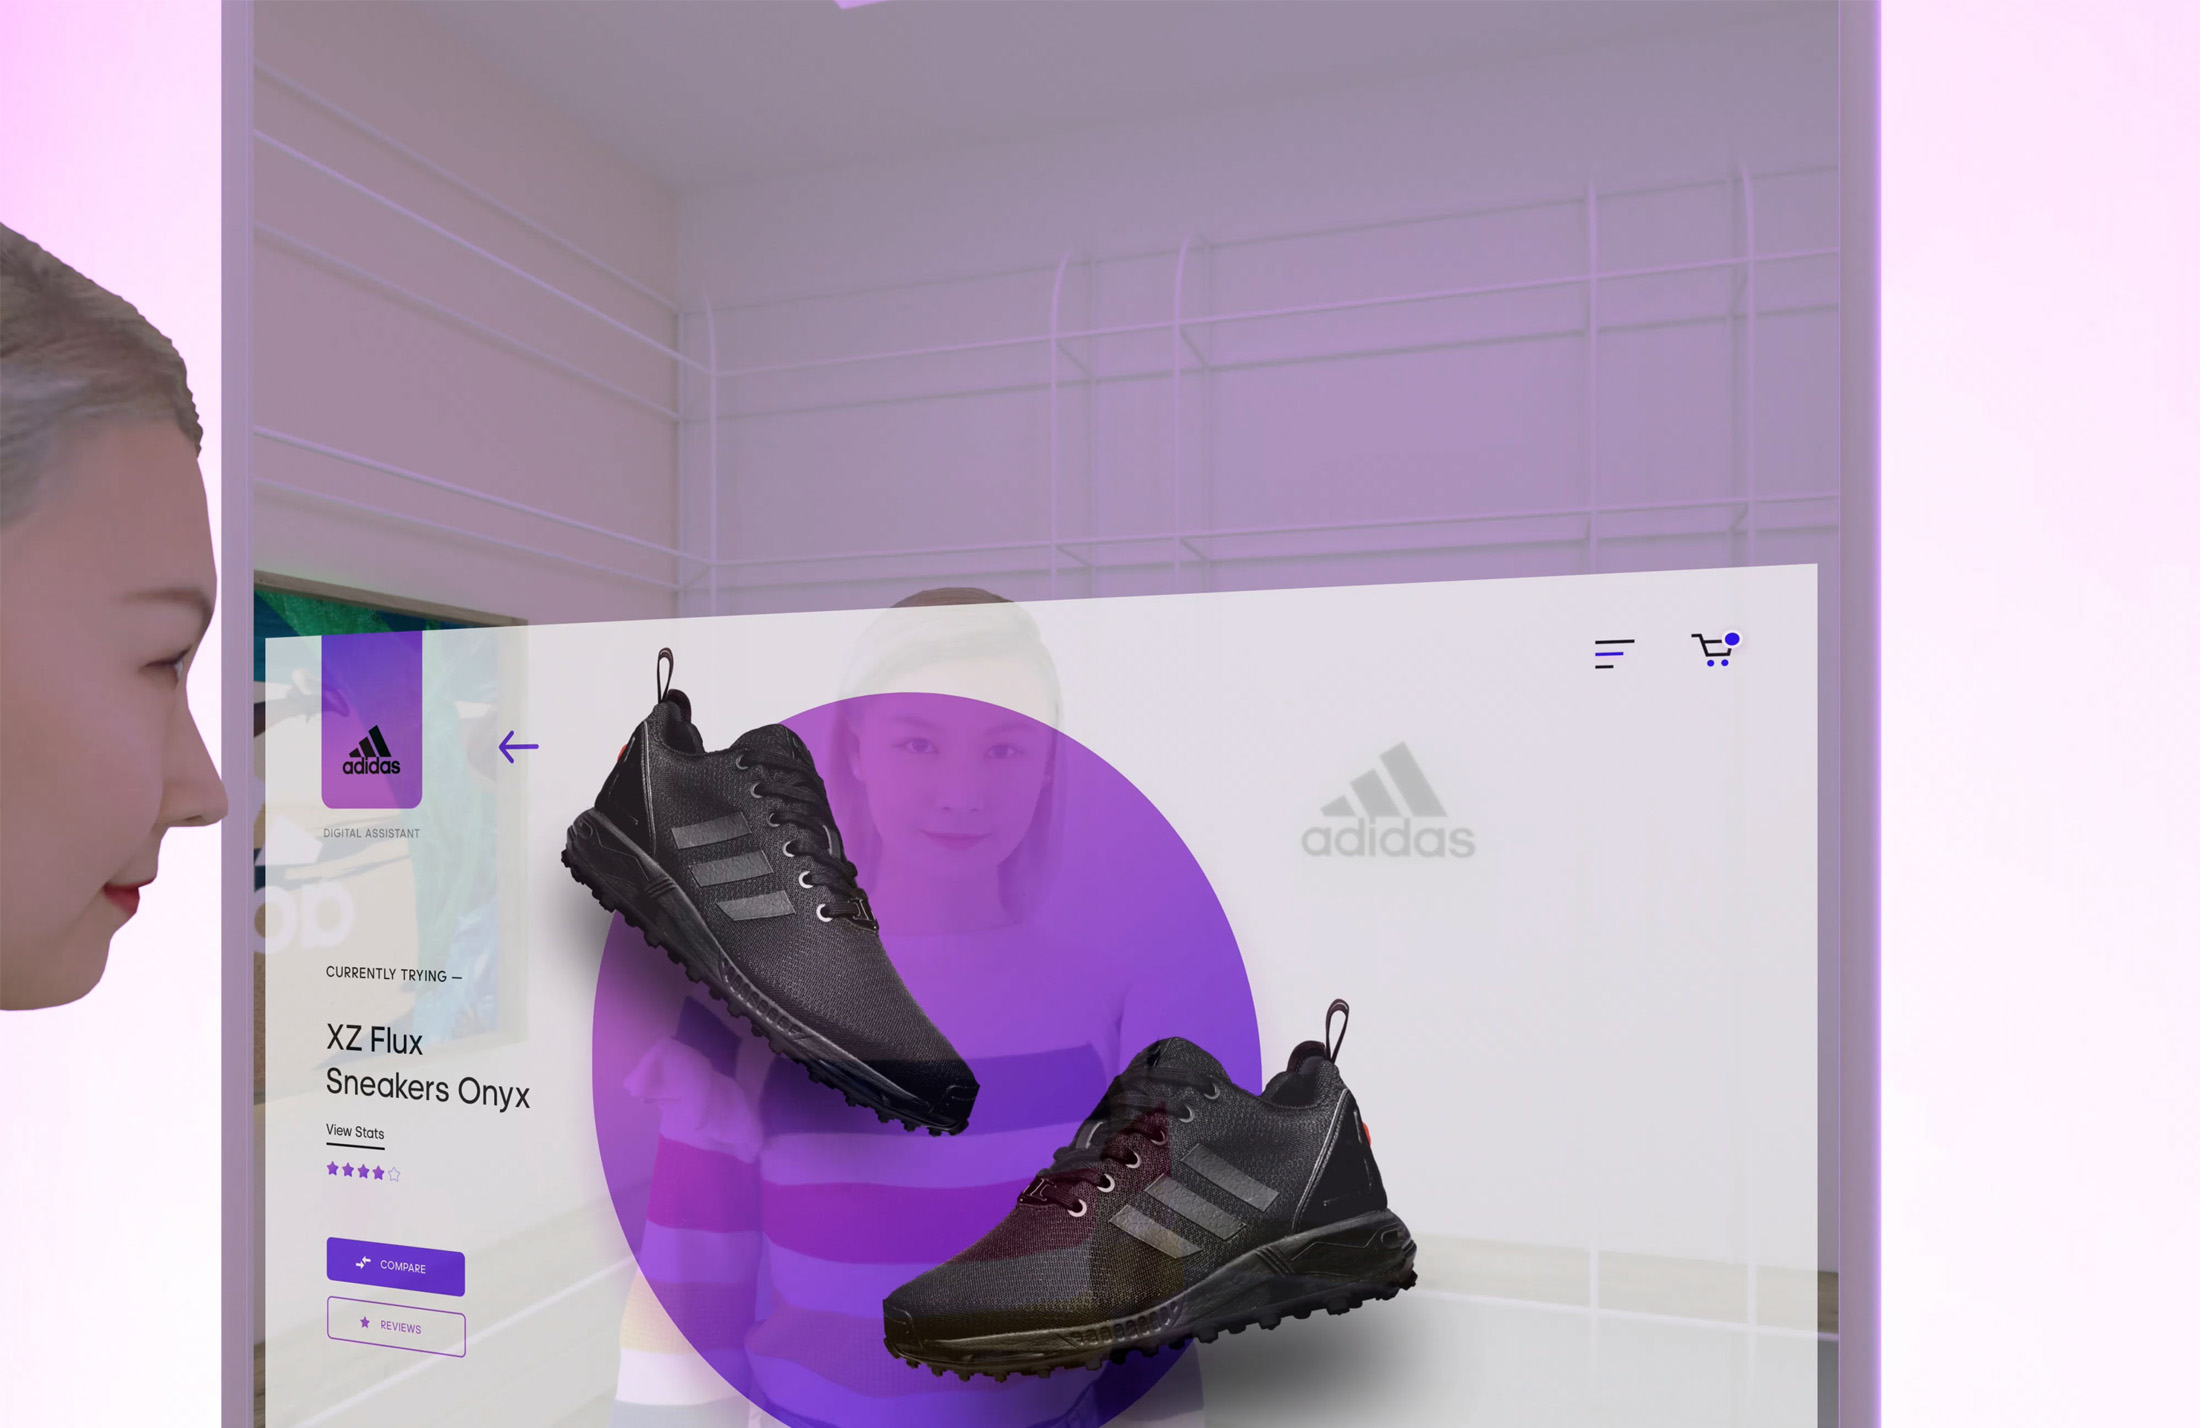 adi_SM_0015_adidas_retail_0015_01_DRESSING_ROOM (0;00;14;11).jpg